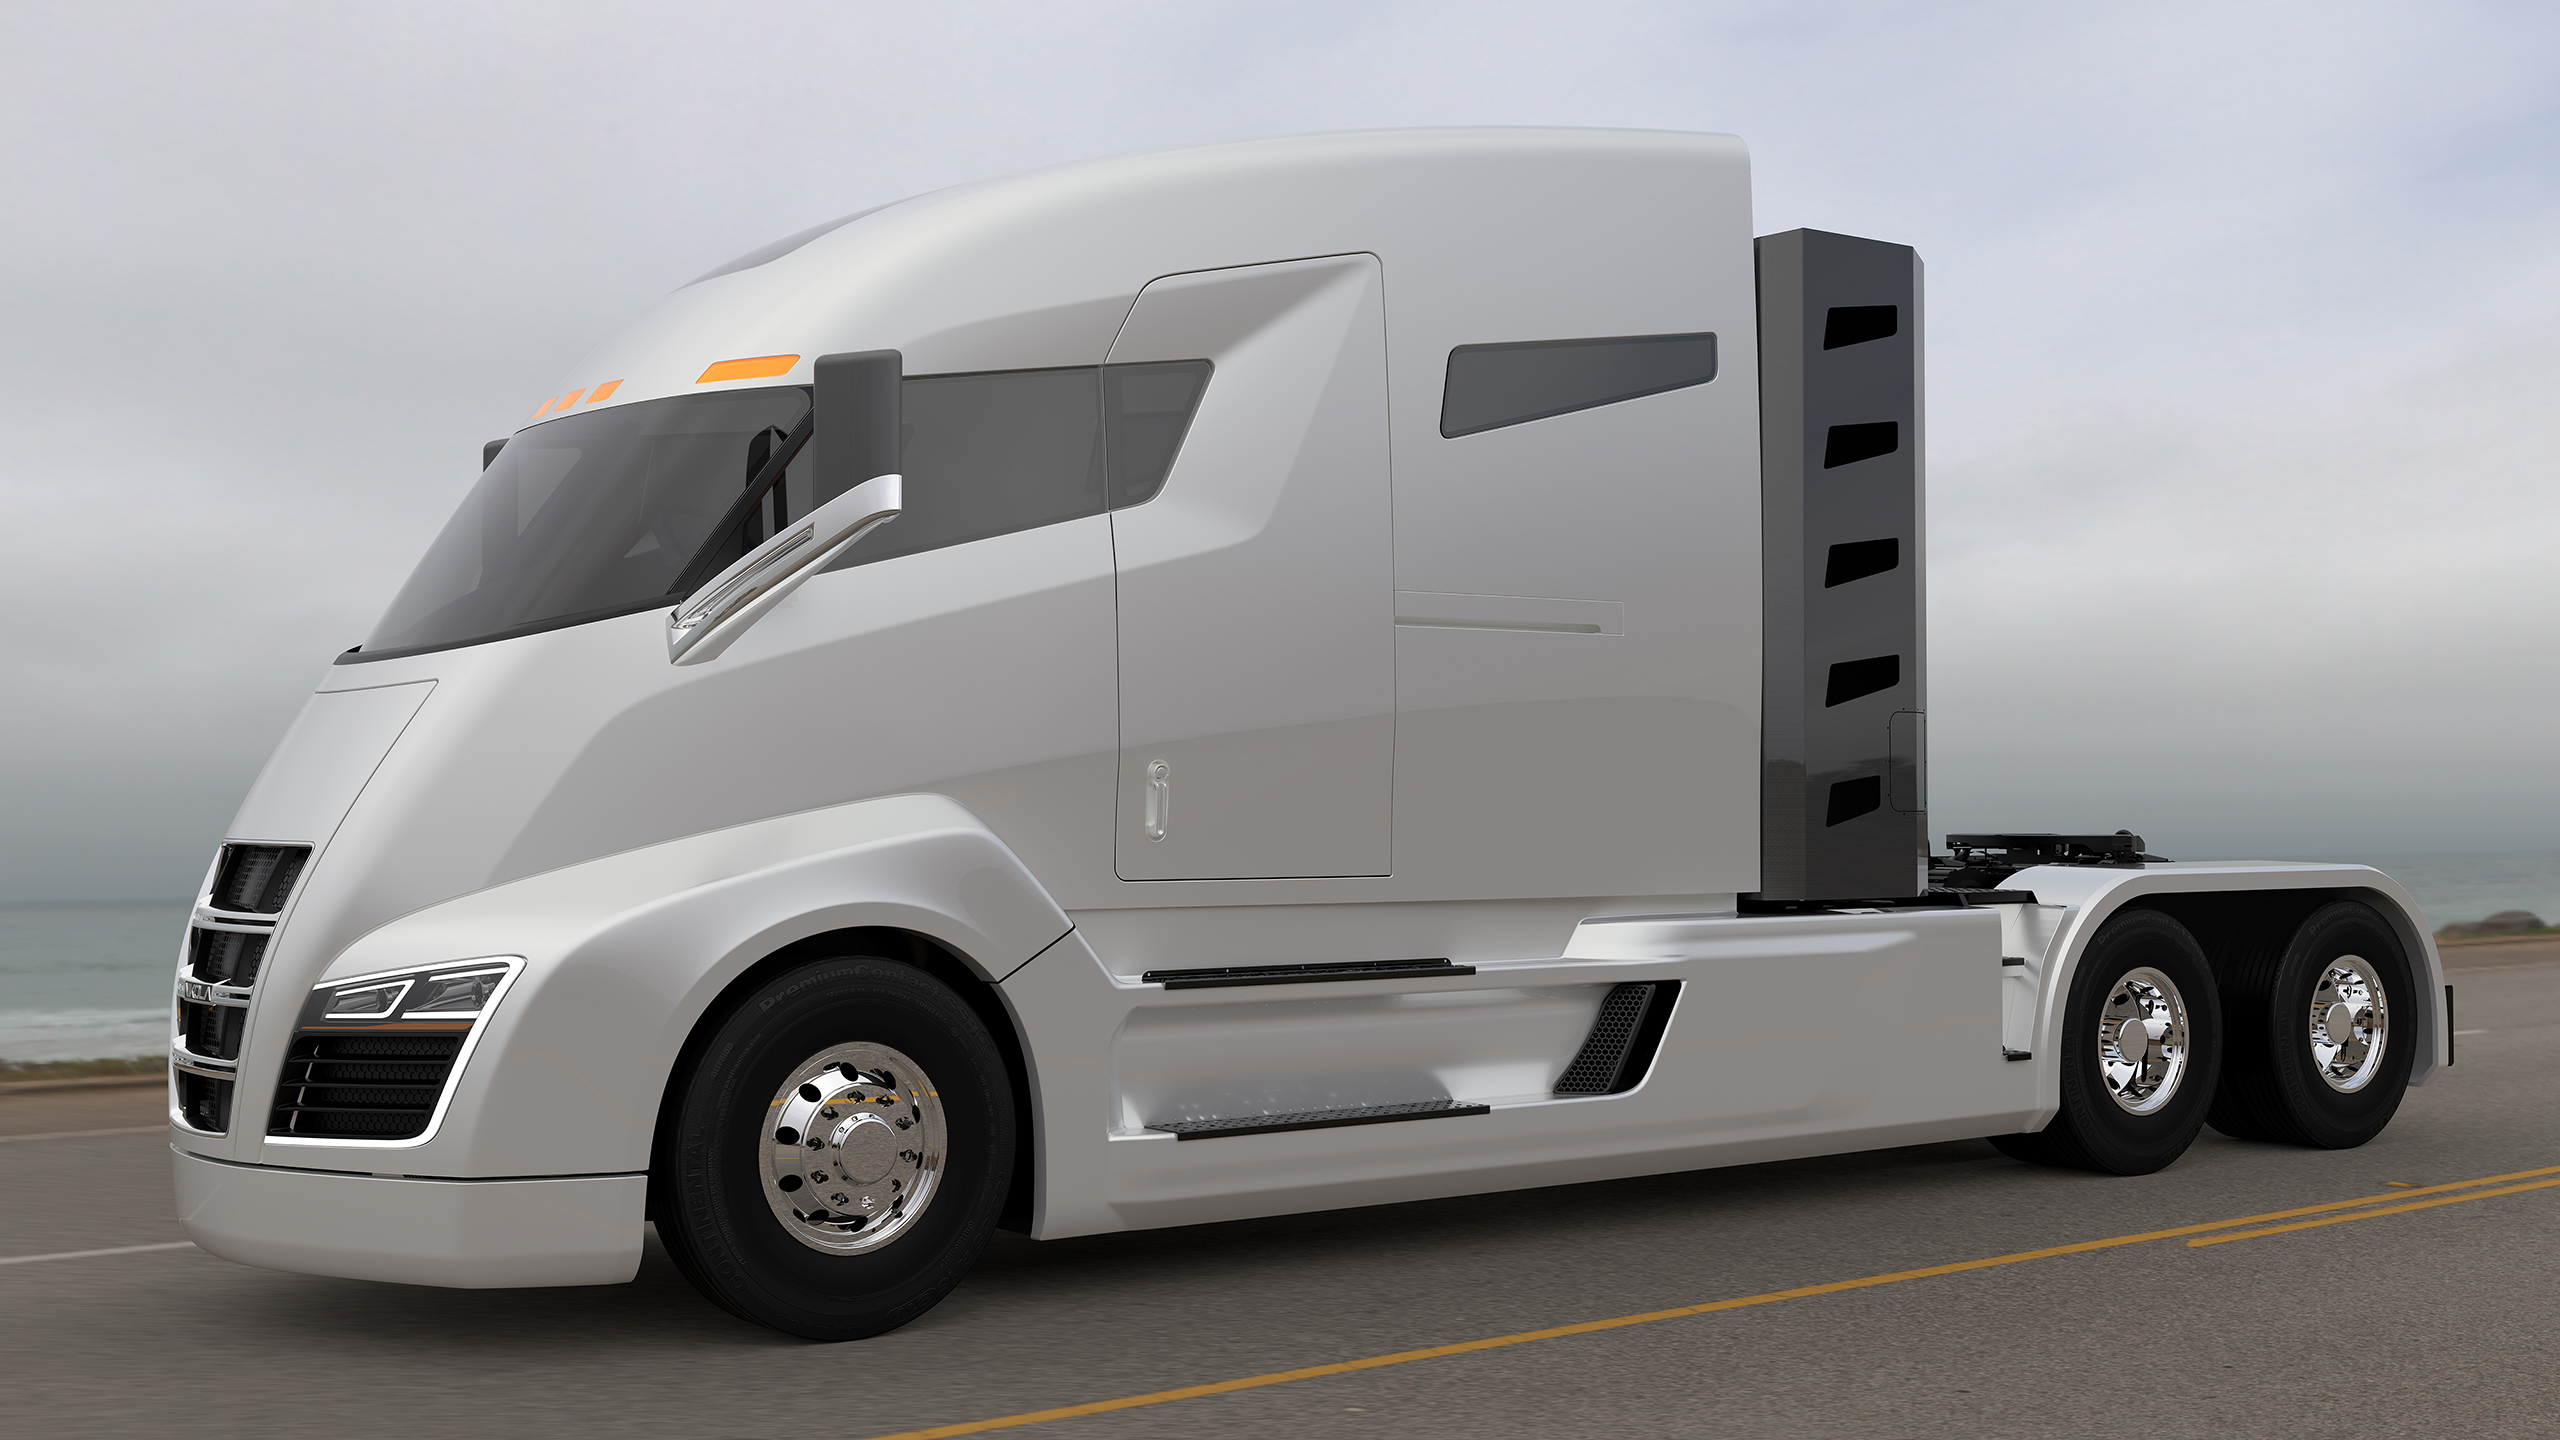 Hybrid-Electric Class 8 Truck Scores Zero Emissions in Testing